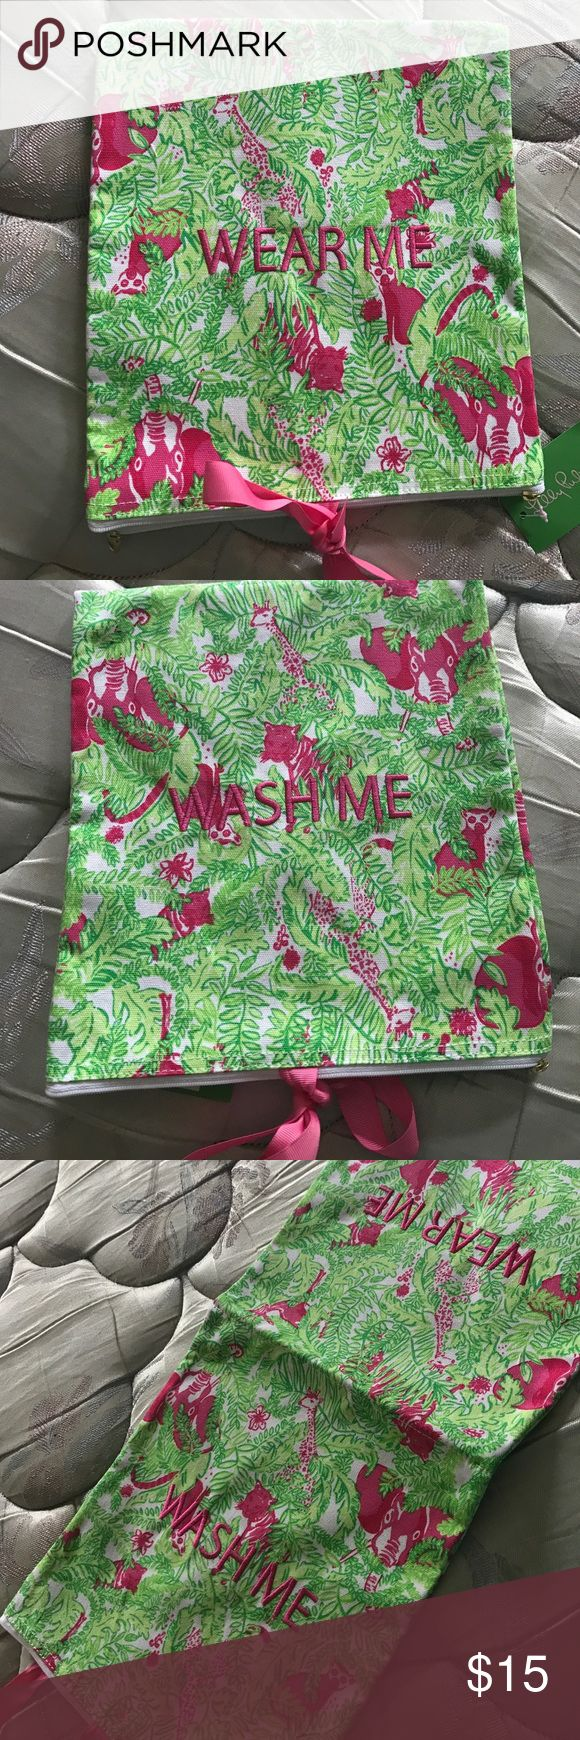 """Lilly Pulitzer Garment Bag """"Wash me/wear me"""" Brand New with tags Lilly Pulitzer garment bag. Backyard safari pattern. Very cute!! 🌺 Lilly Pulitzer Bags Travel Bags"""